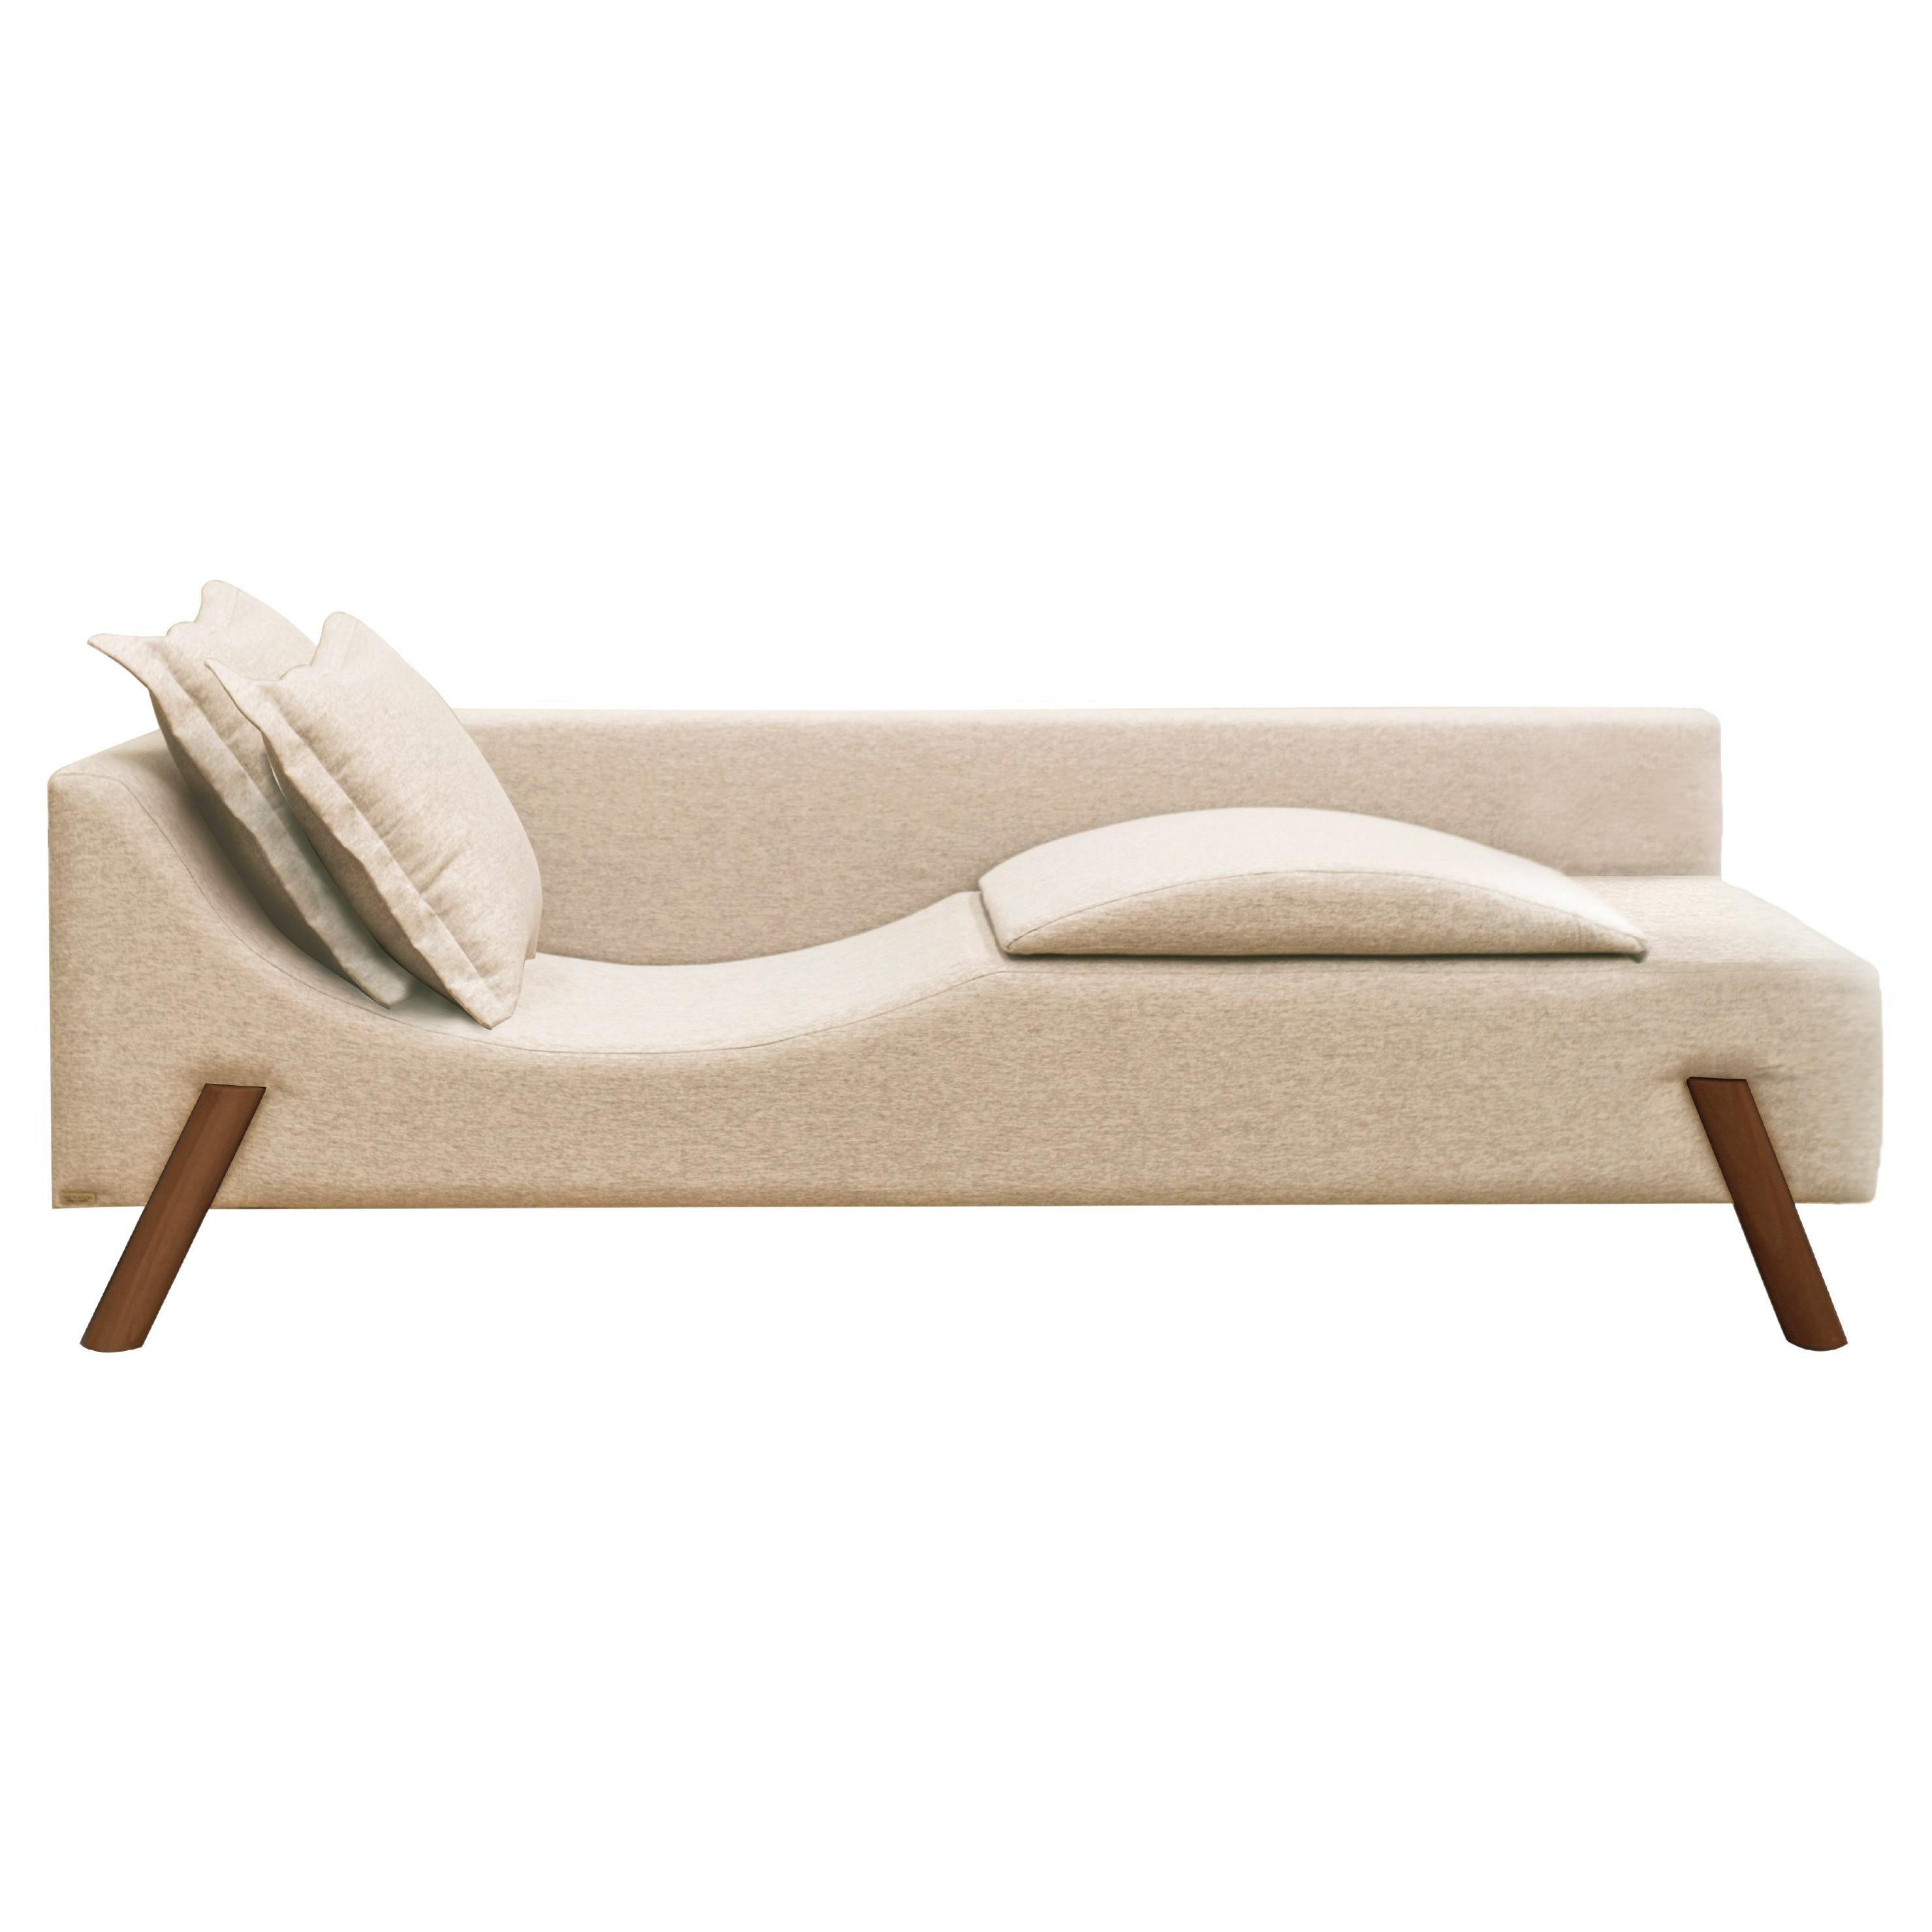 Flag Couch Chaise Longue in Natural Linen and Wood Feet